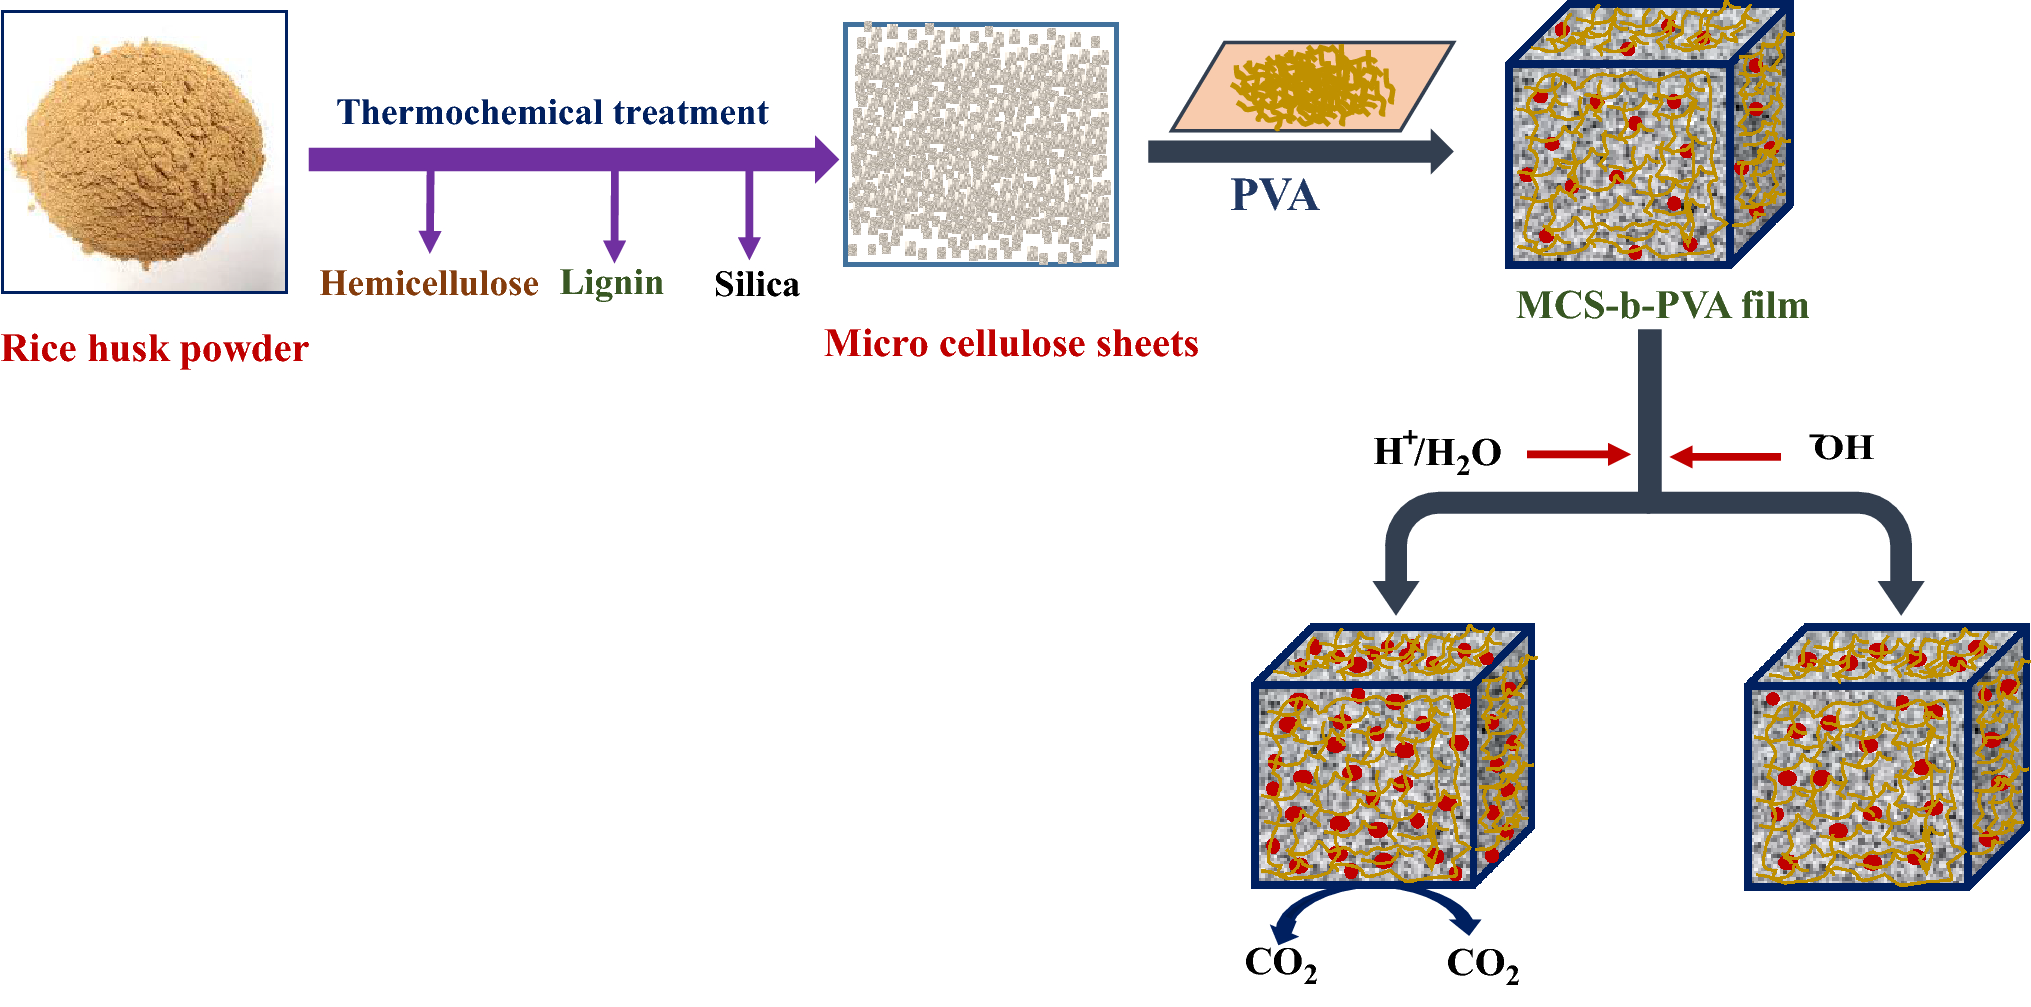 Micro-cellulose Sheet and Polyvinyl Alcohol Blended Film for Active